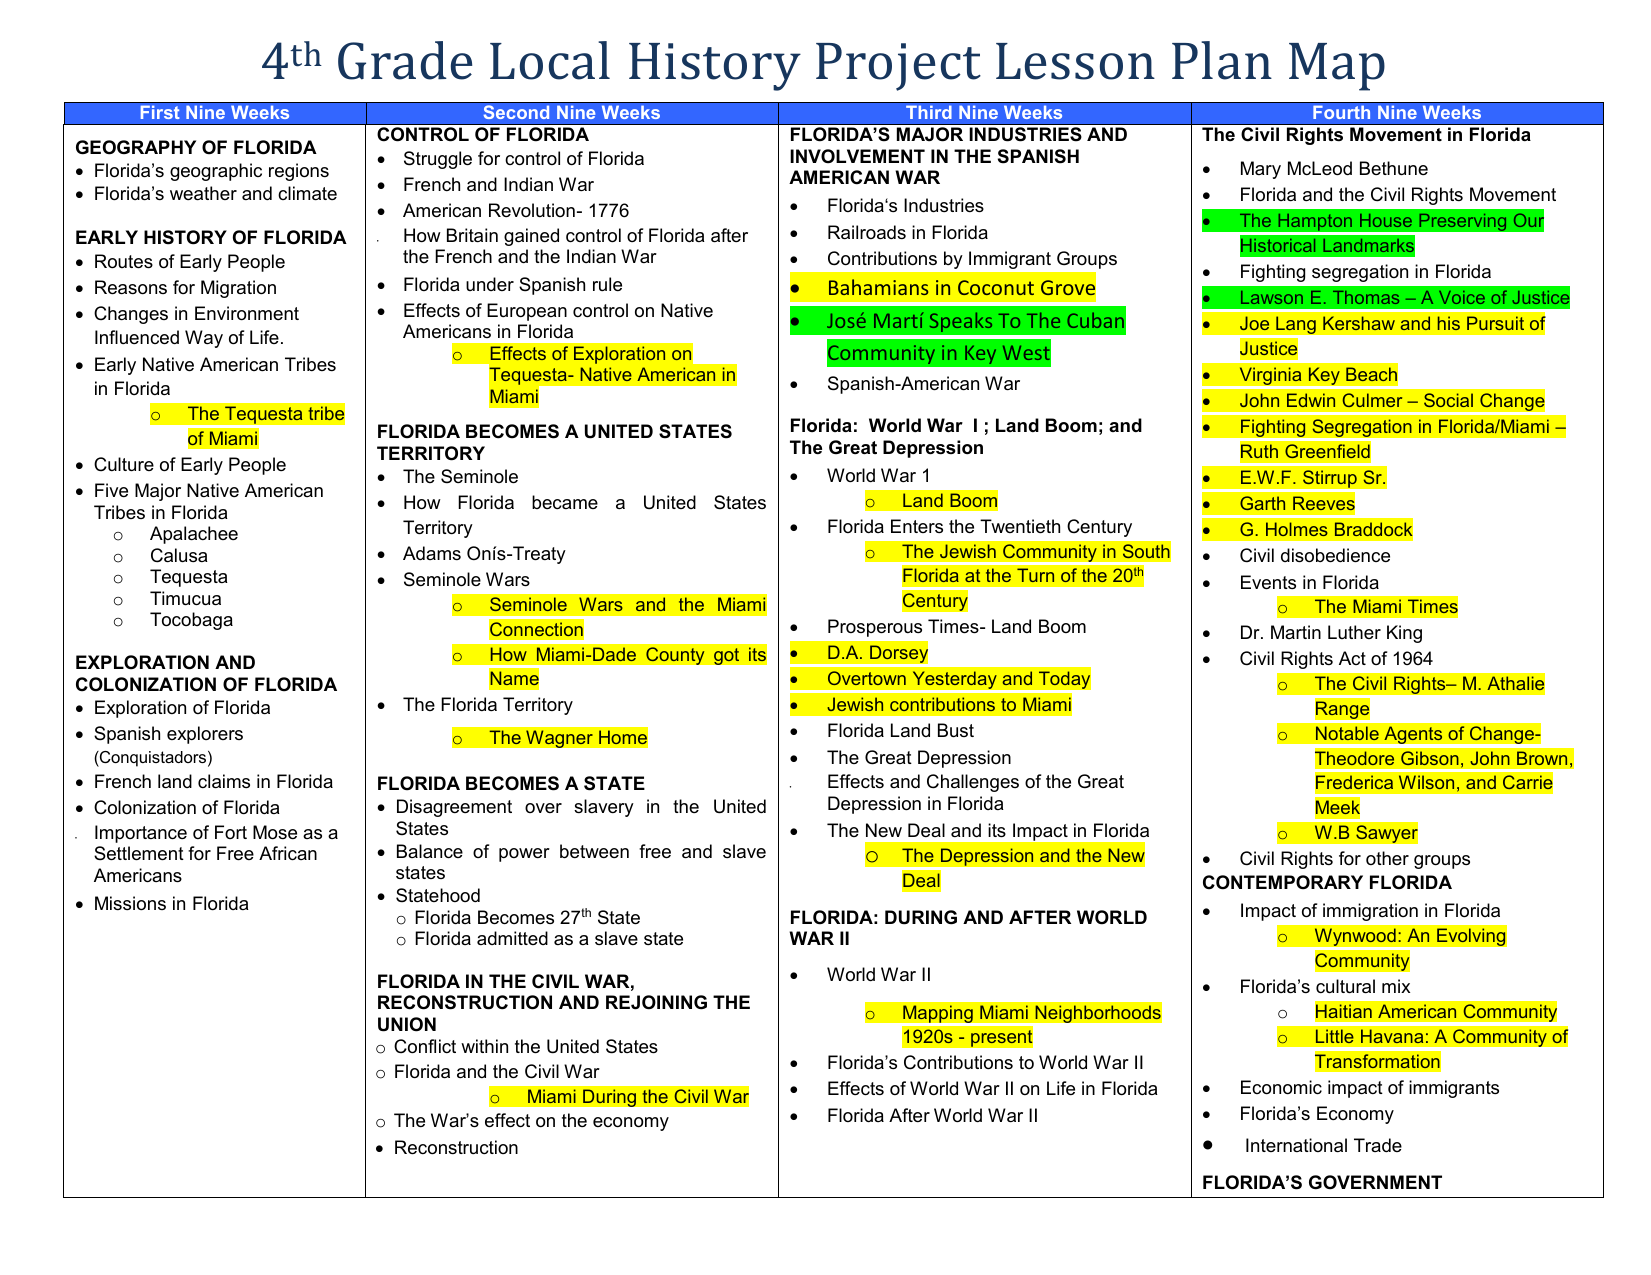 4th 5th Grade Local History Project Lesson Plan Maps Spanish American War Map Activity on mexican war map activity, cold war map activity, spanish america map, spanish american war graphic organizer, vietnam war map activity, spanish american war comprehension, world war i map activity, world war ii map activity, war of 1812 map activity, spanish american war map worksheet, native american map activity, korean war map activity, the american revolution map activity, civil war battles map activity, french & indian war map activity, spanish american war introduction,